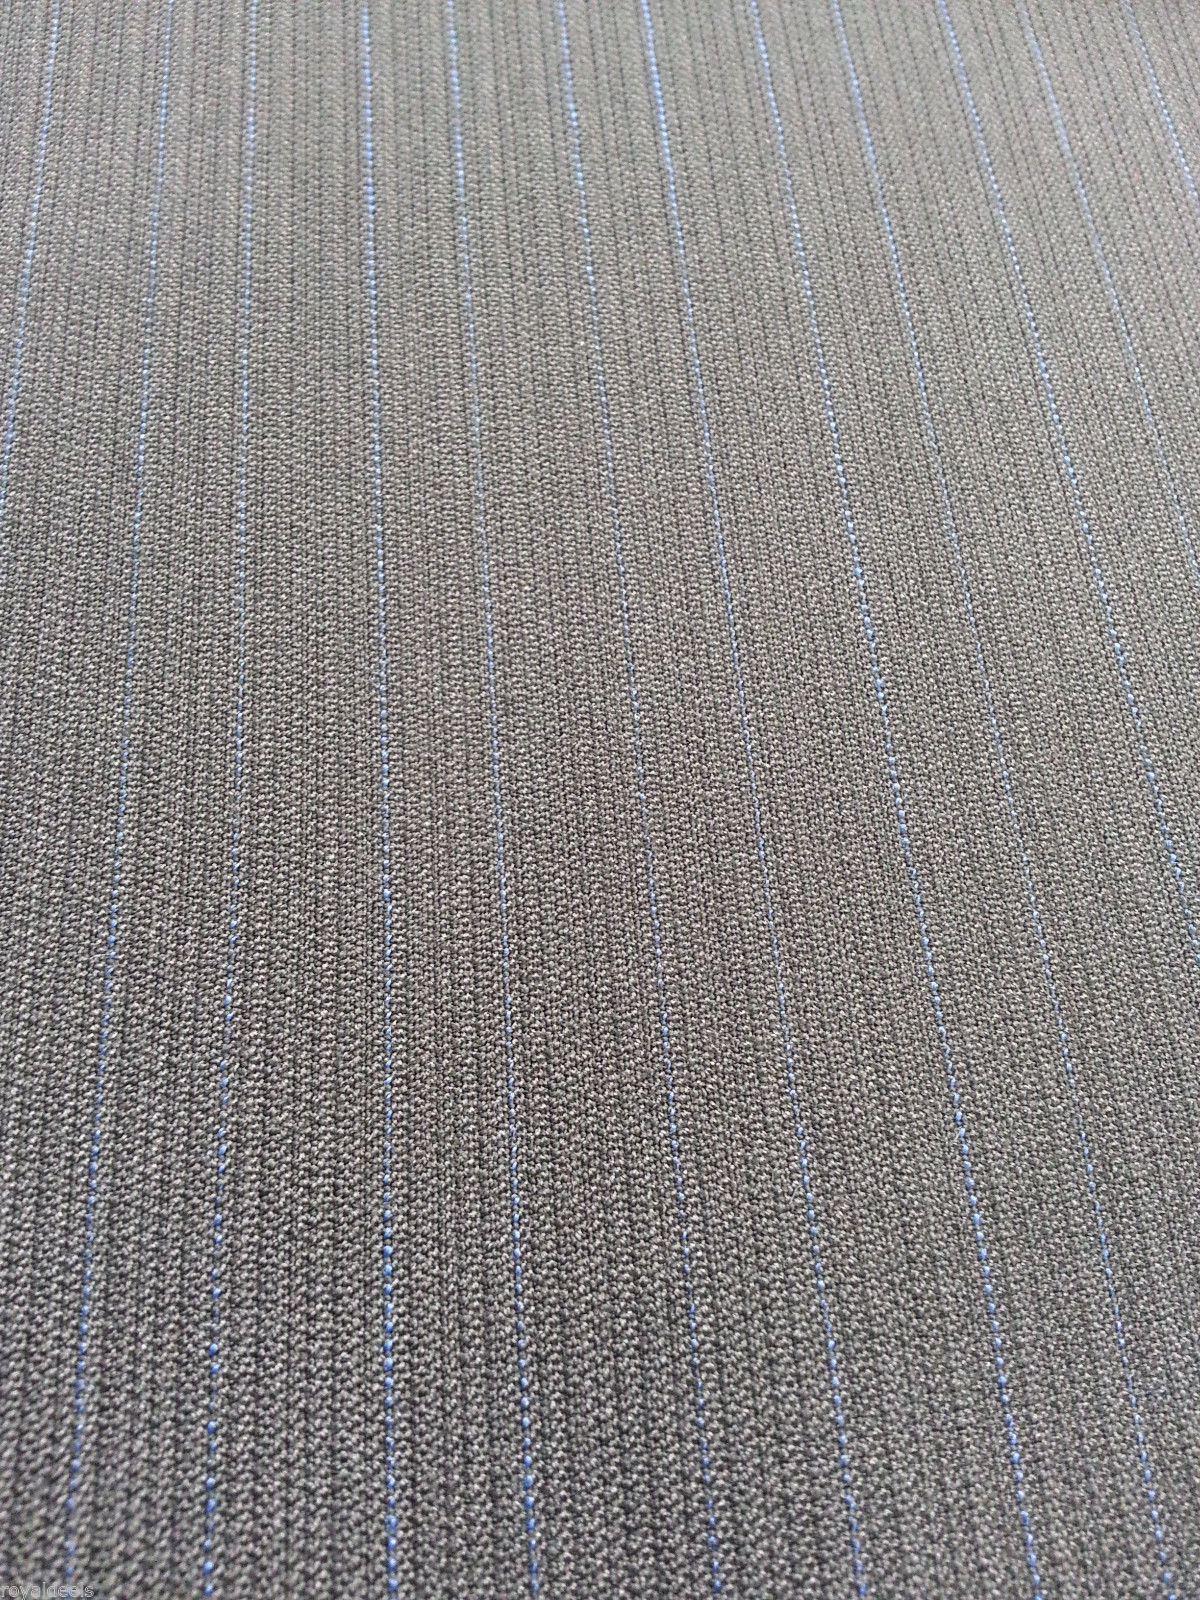 BY THE YARD SUPER 100'S ENGLISH WOOL FABRIC BY FAIRGLOW- TOP QUALITY!! MSRP$699